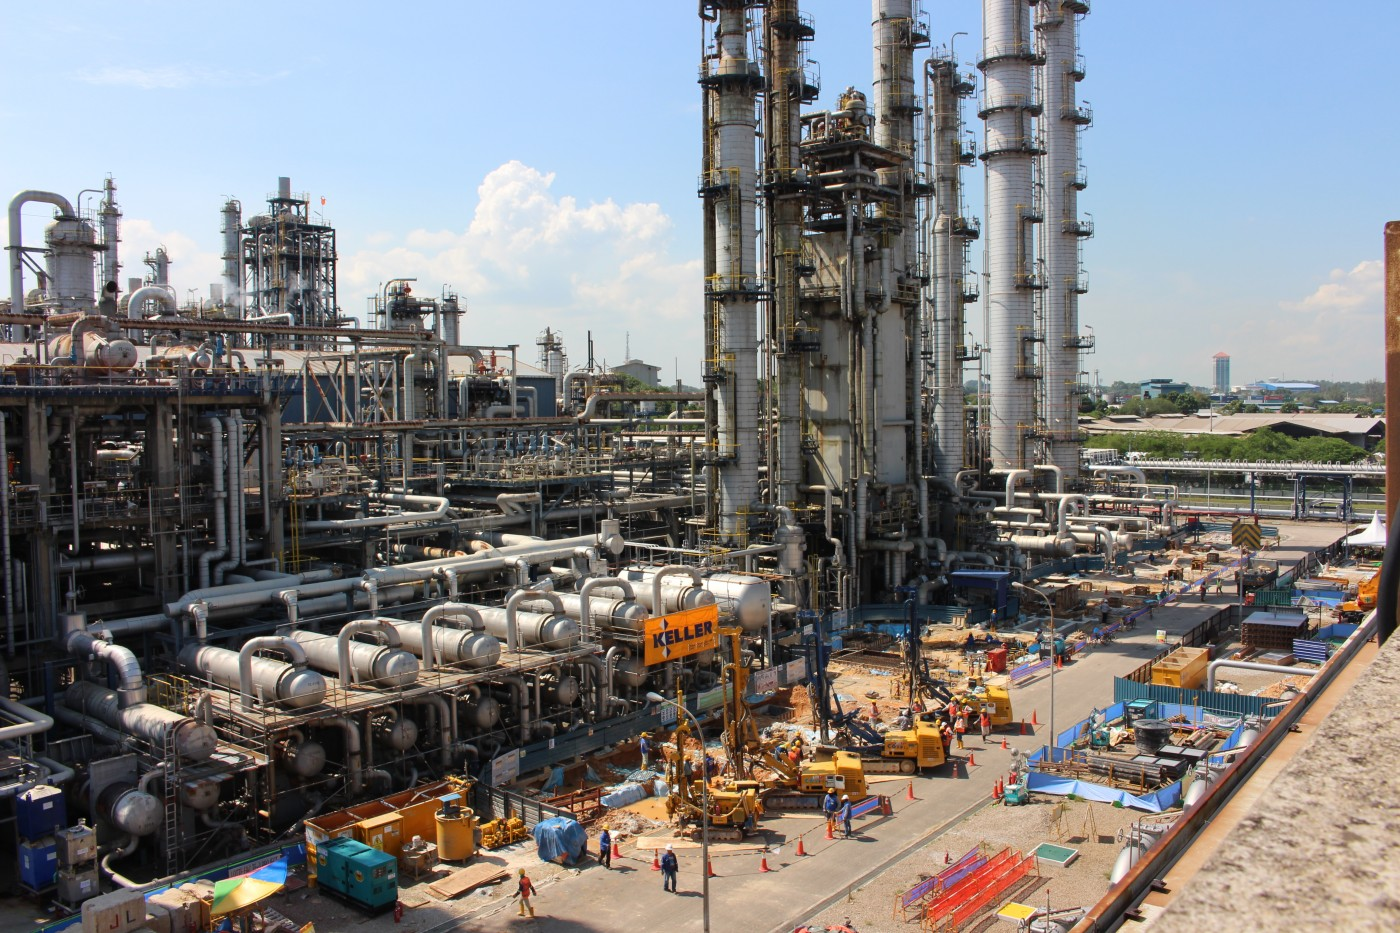 Keller oil gas and chemical project for Lotte